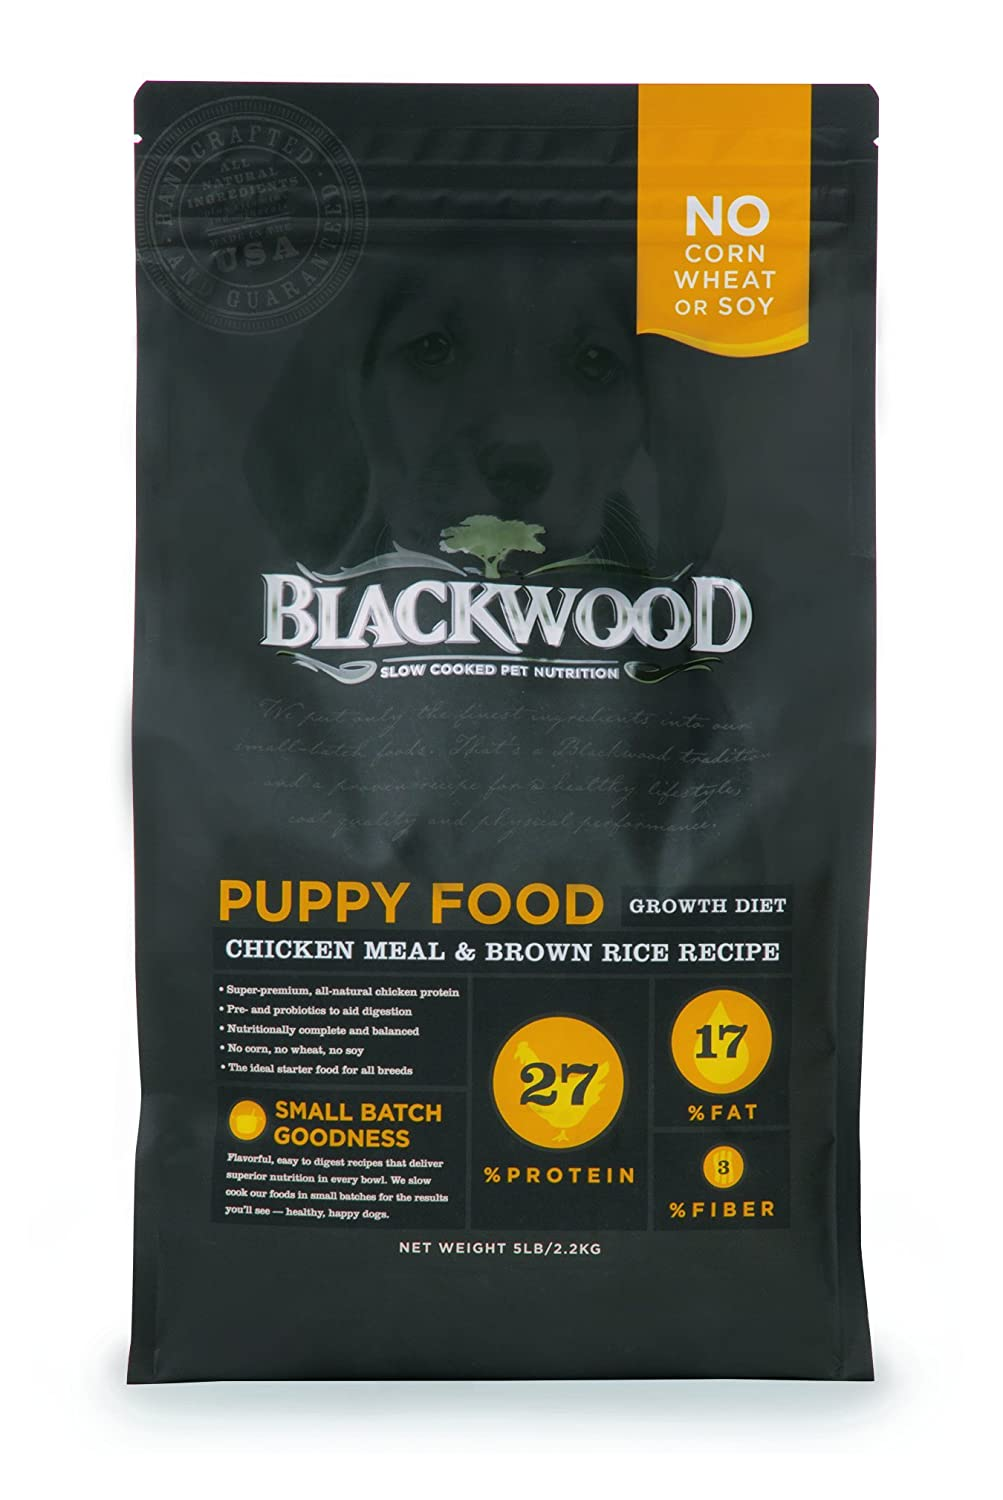 Blackwood Puppy Food Growth Diet Made in USA Natural Dry Dog Food For All Breeds and Sizes of Puppies , Chicken Meal Brown Rice Recipe